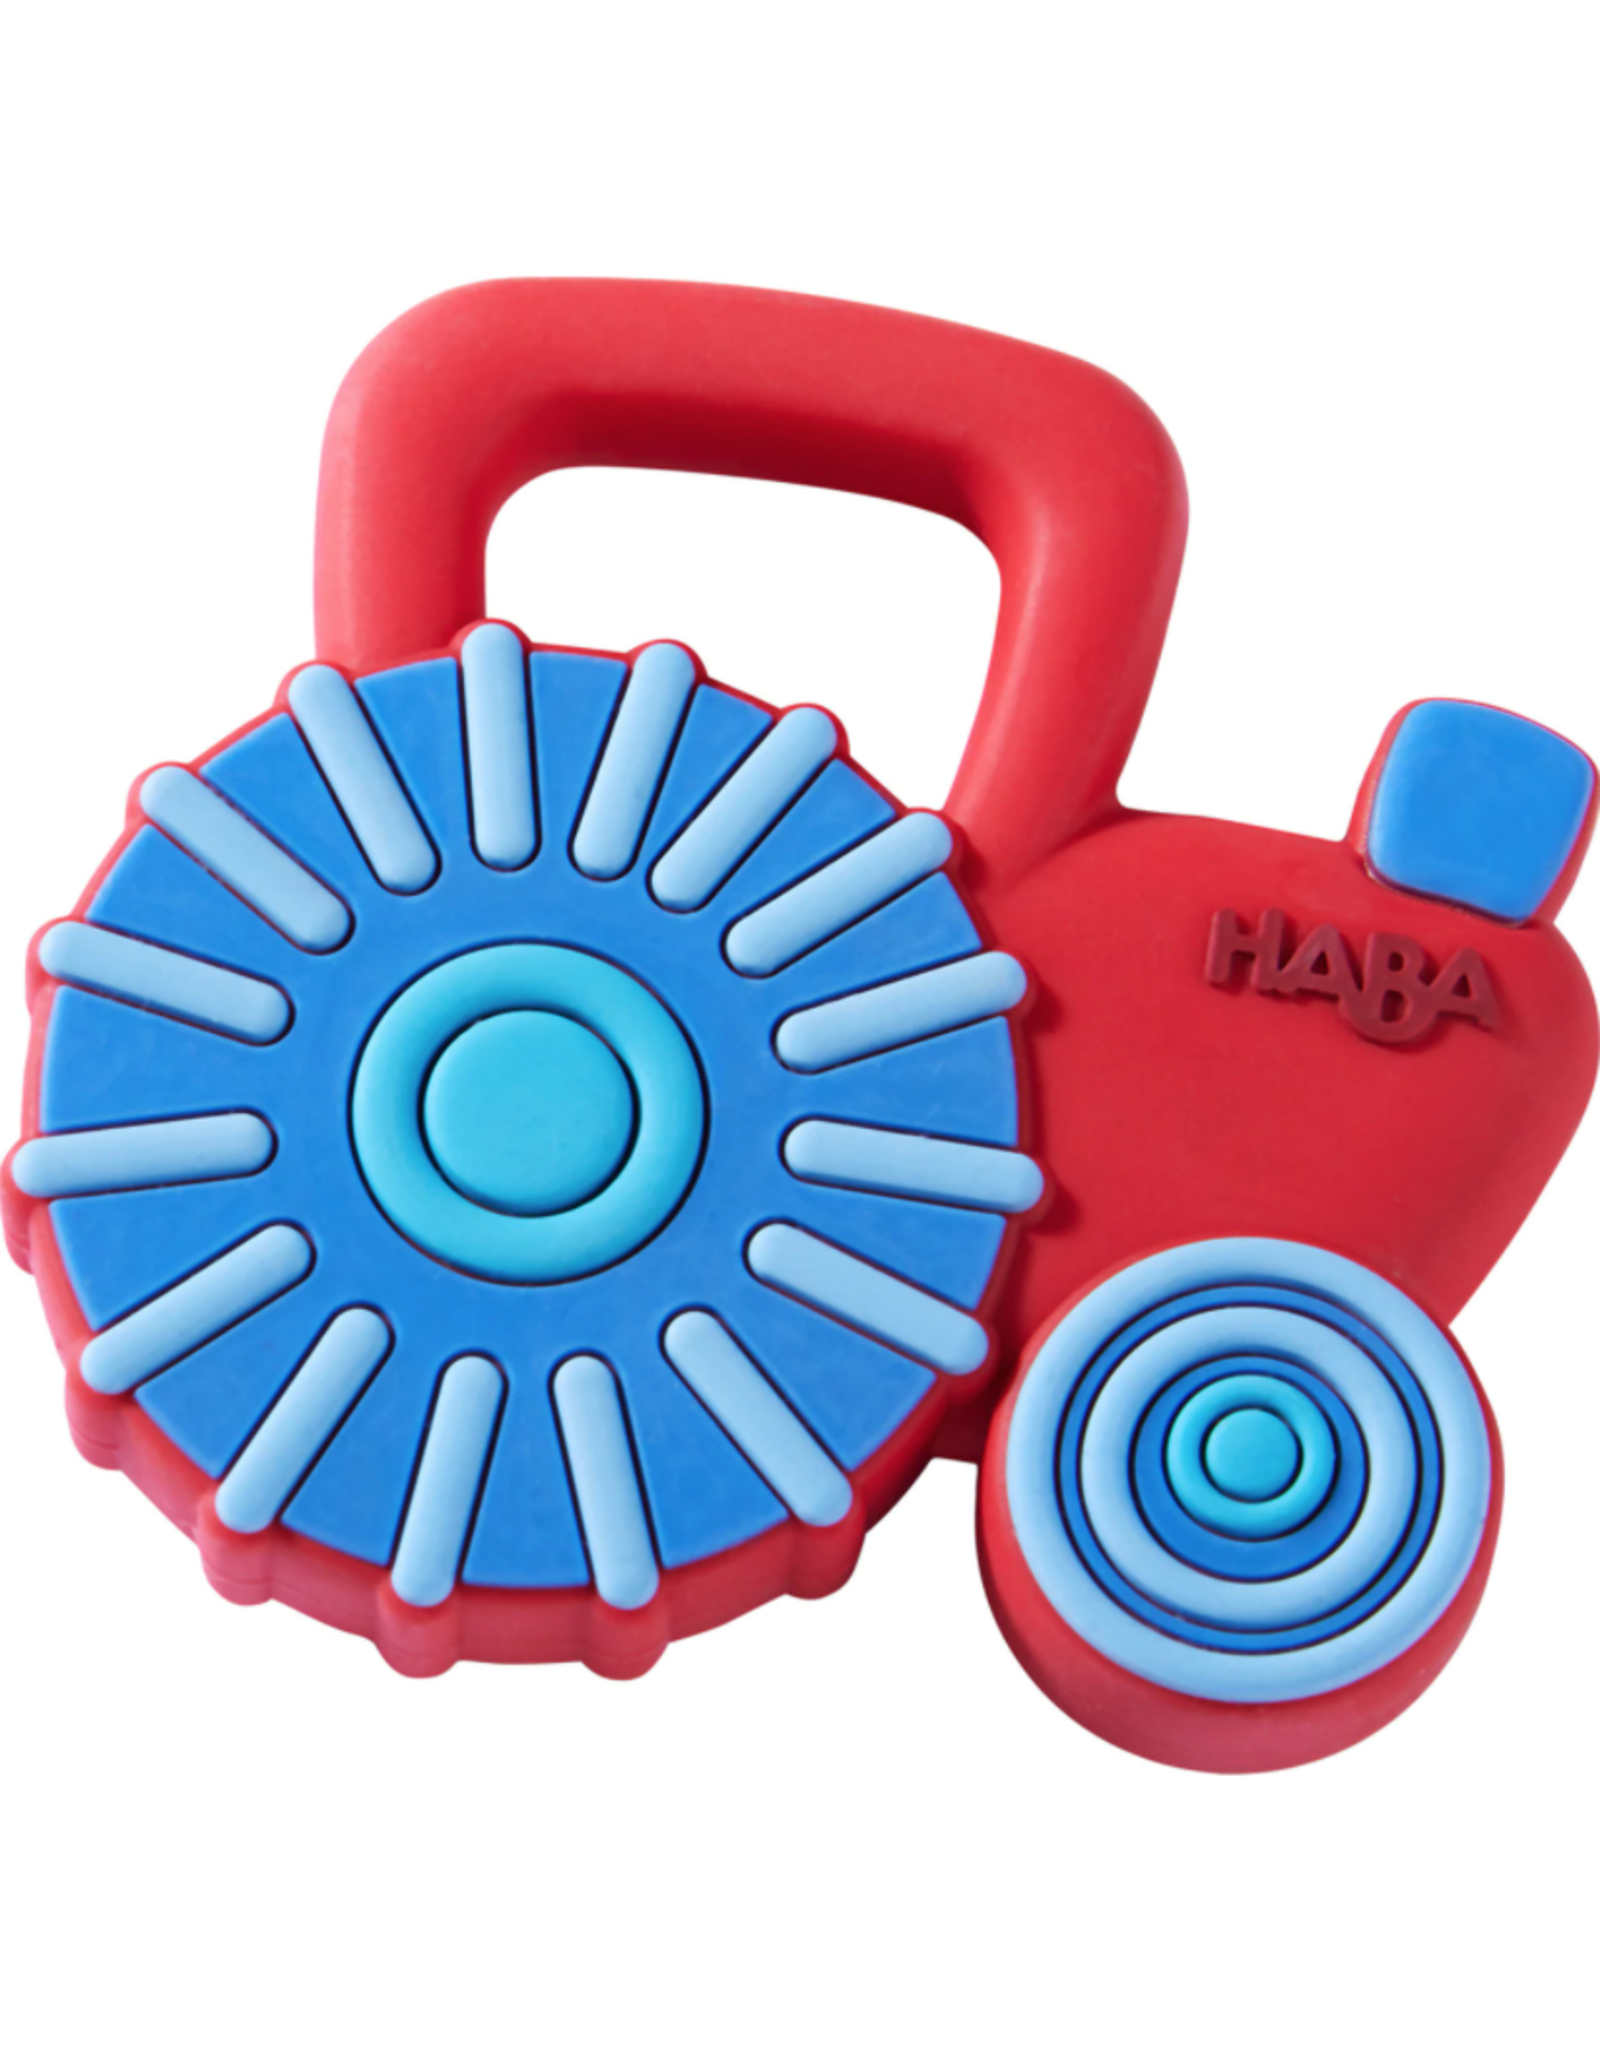 Haba Clutching Toy, Tactor